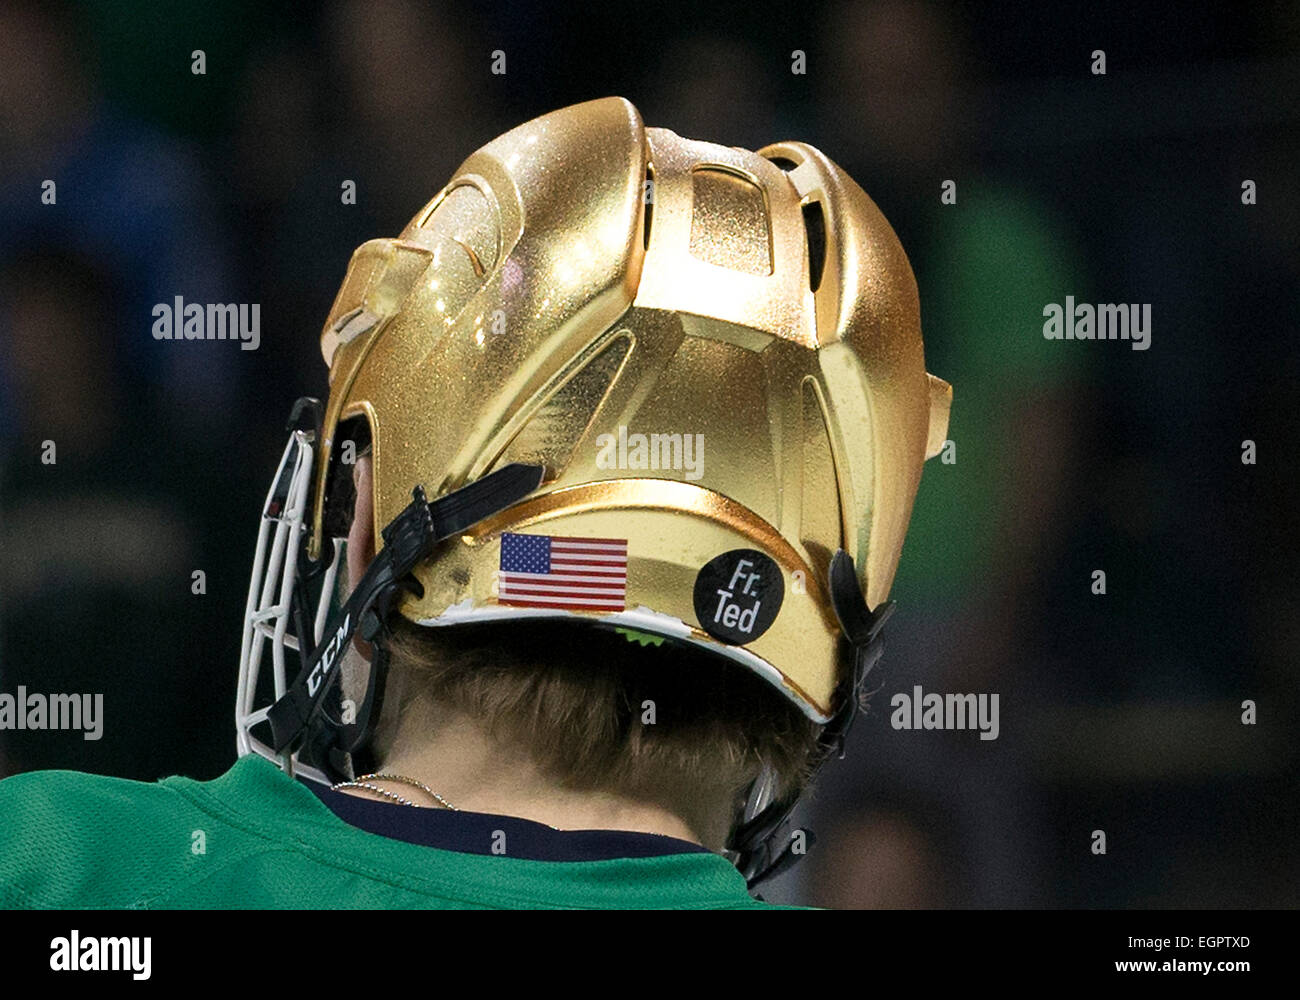 February 28, 2015: Notre Dame players honor Father Ted